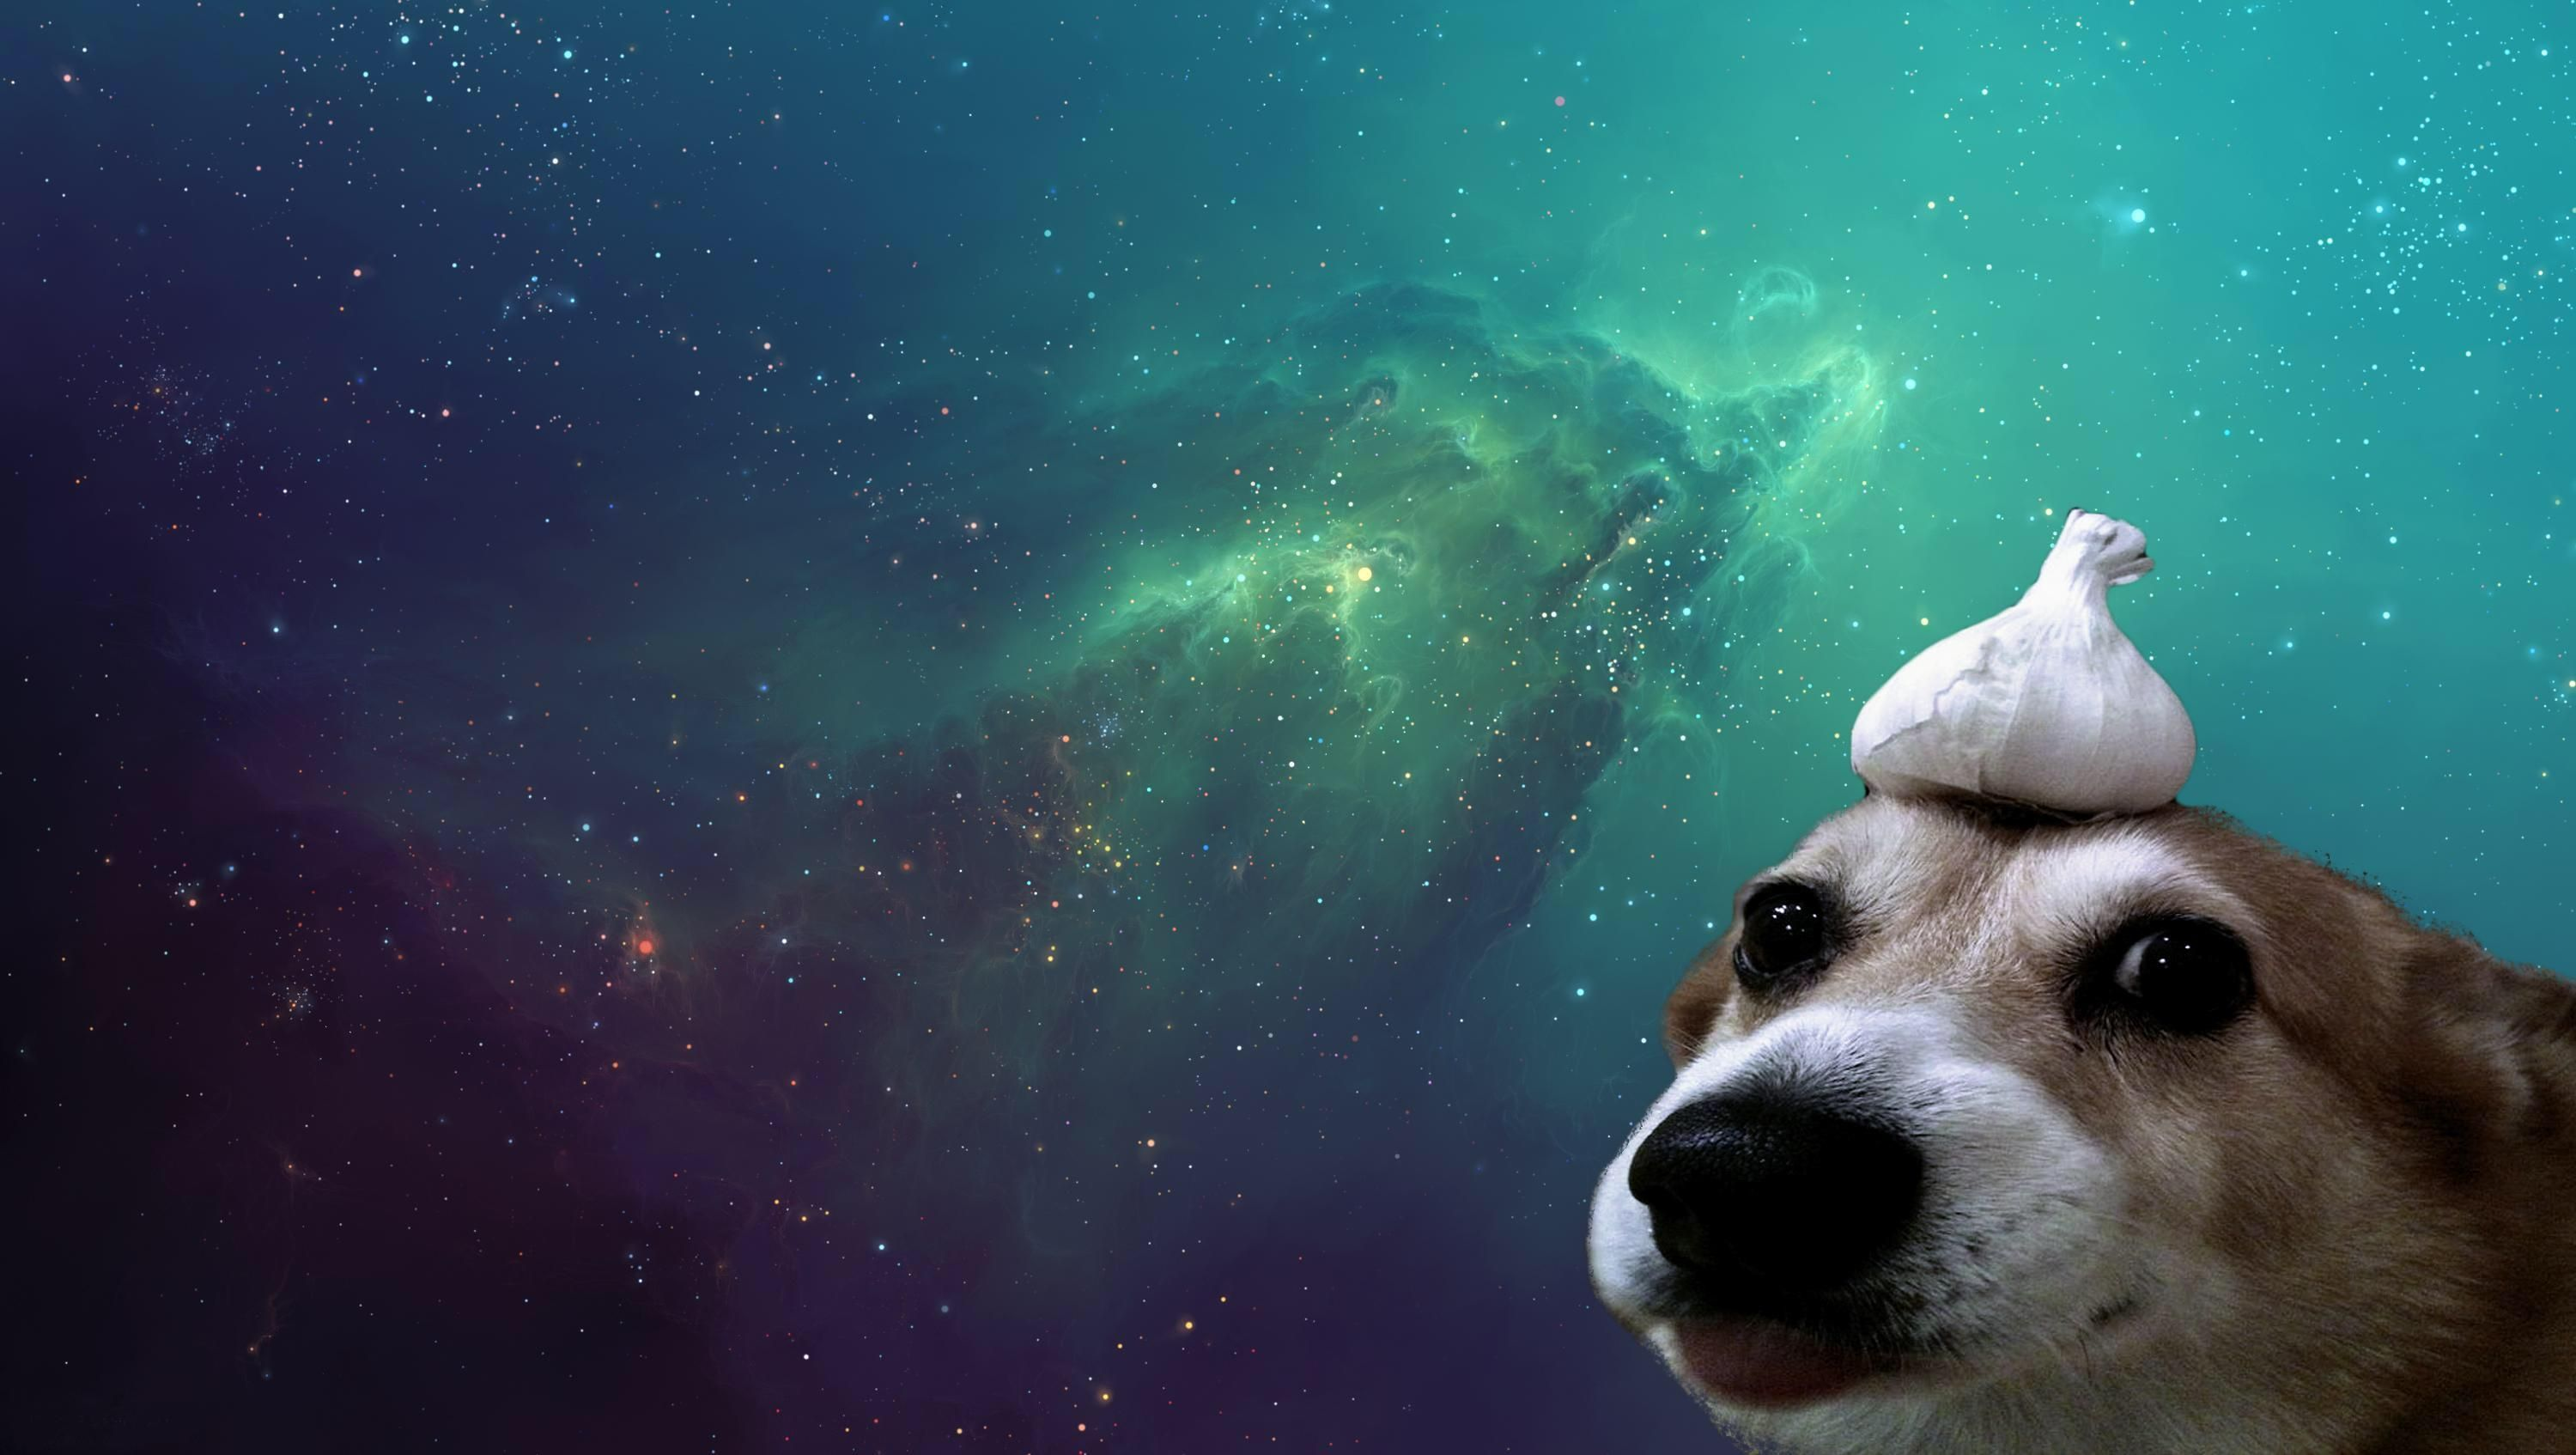 3000x1694 I Need More Funny But Aesthetic Wallpapers Like This Please Cutepuppywallpaperfor Animal Wallpaper Minimalist Animal Aesthetic Desktop Wallpaper